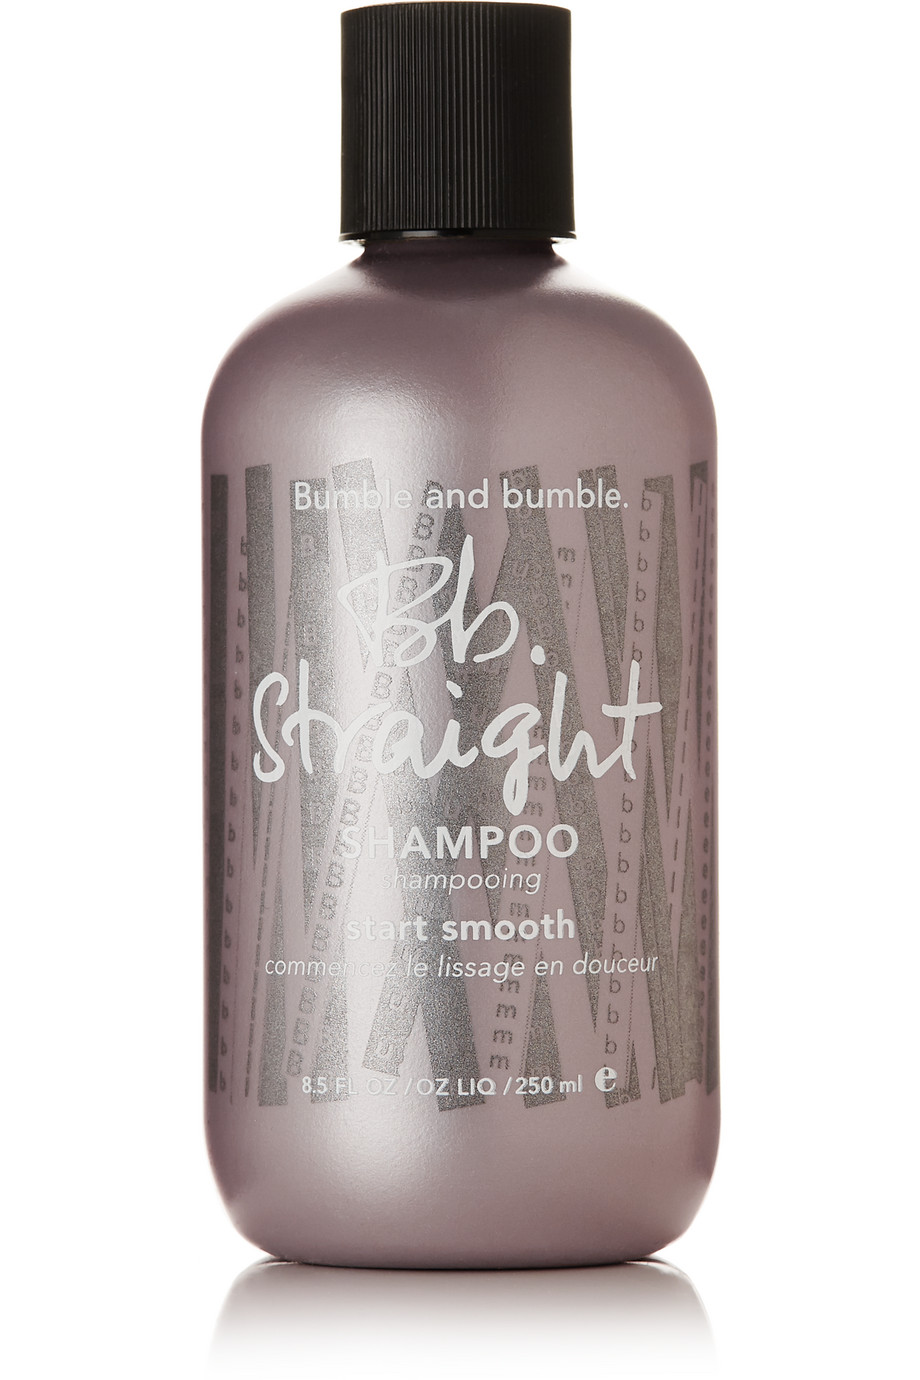 Straight Shampoo, 250ml